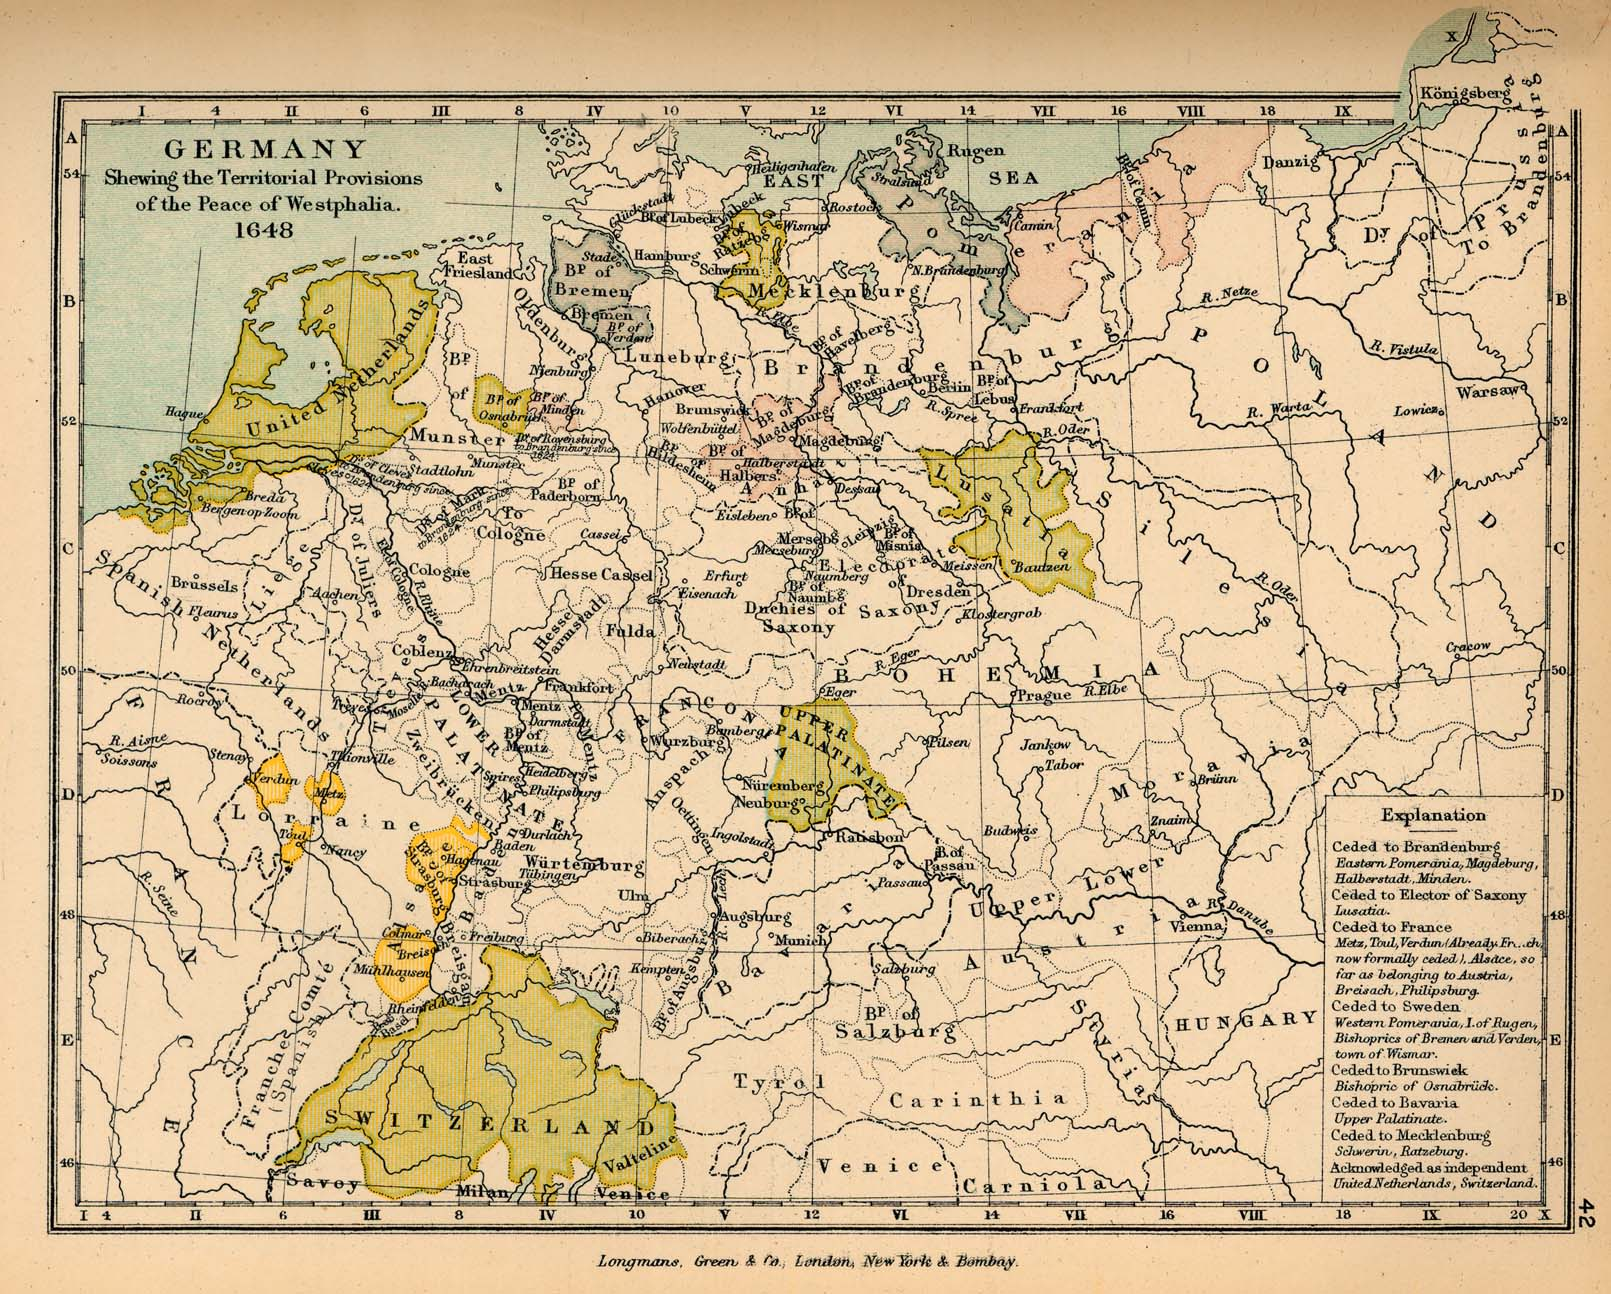 germany after the peace of westphalia